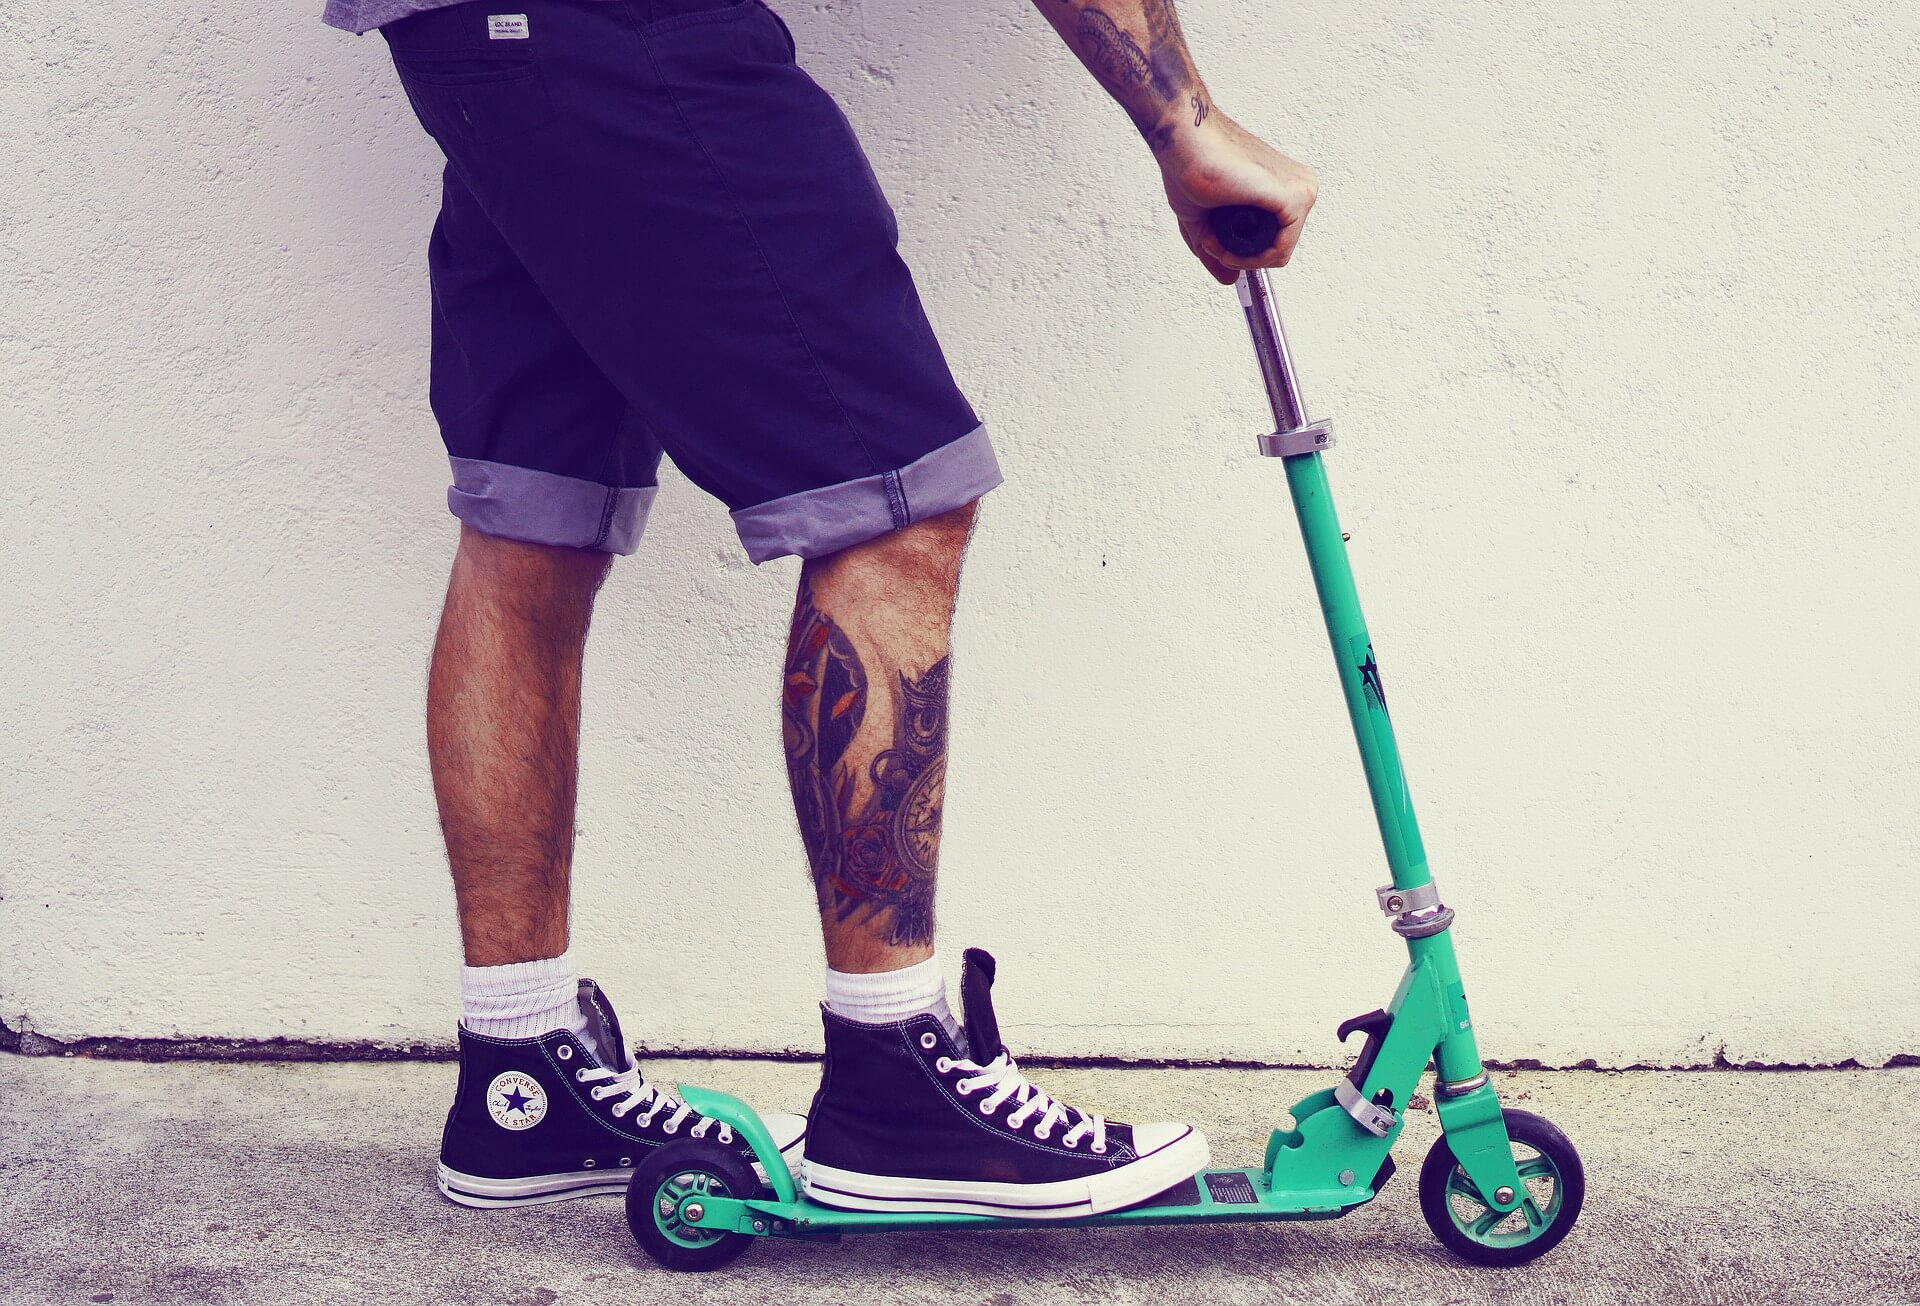 scooter-1605608_1920